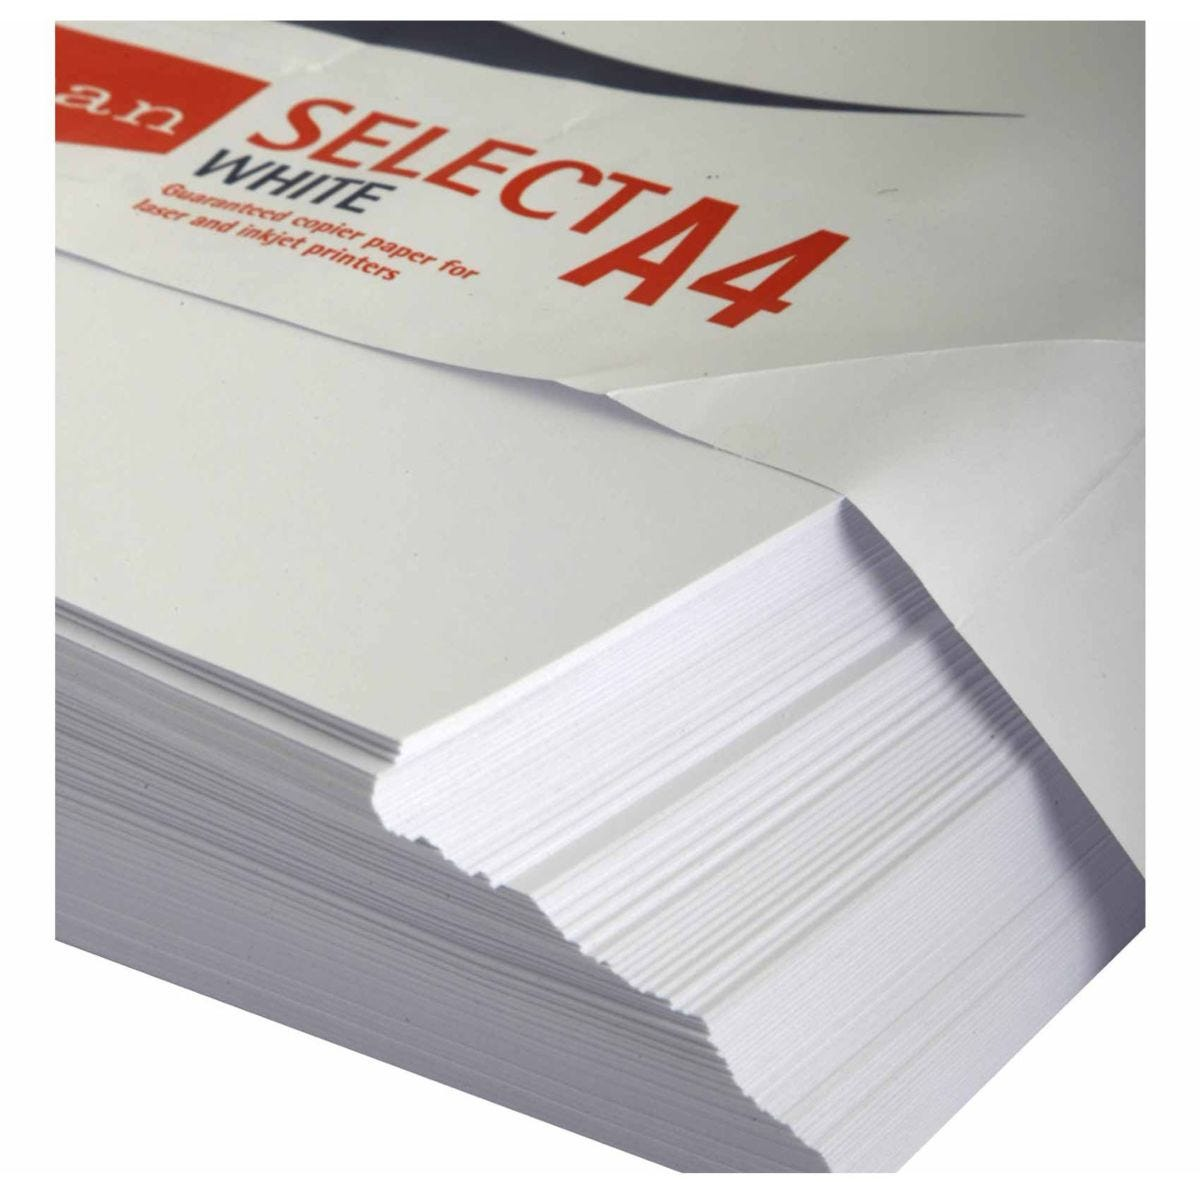 Ryman Select A4 80gm Paper – 500 Pack